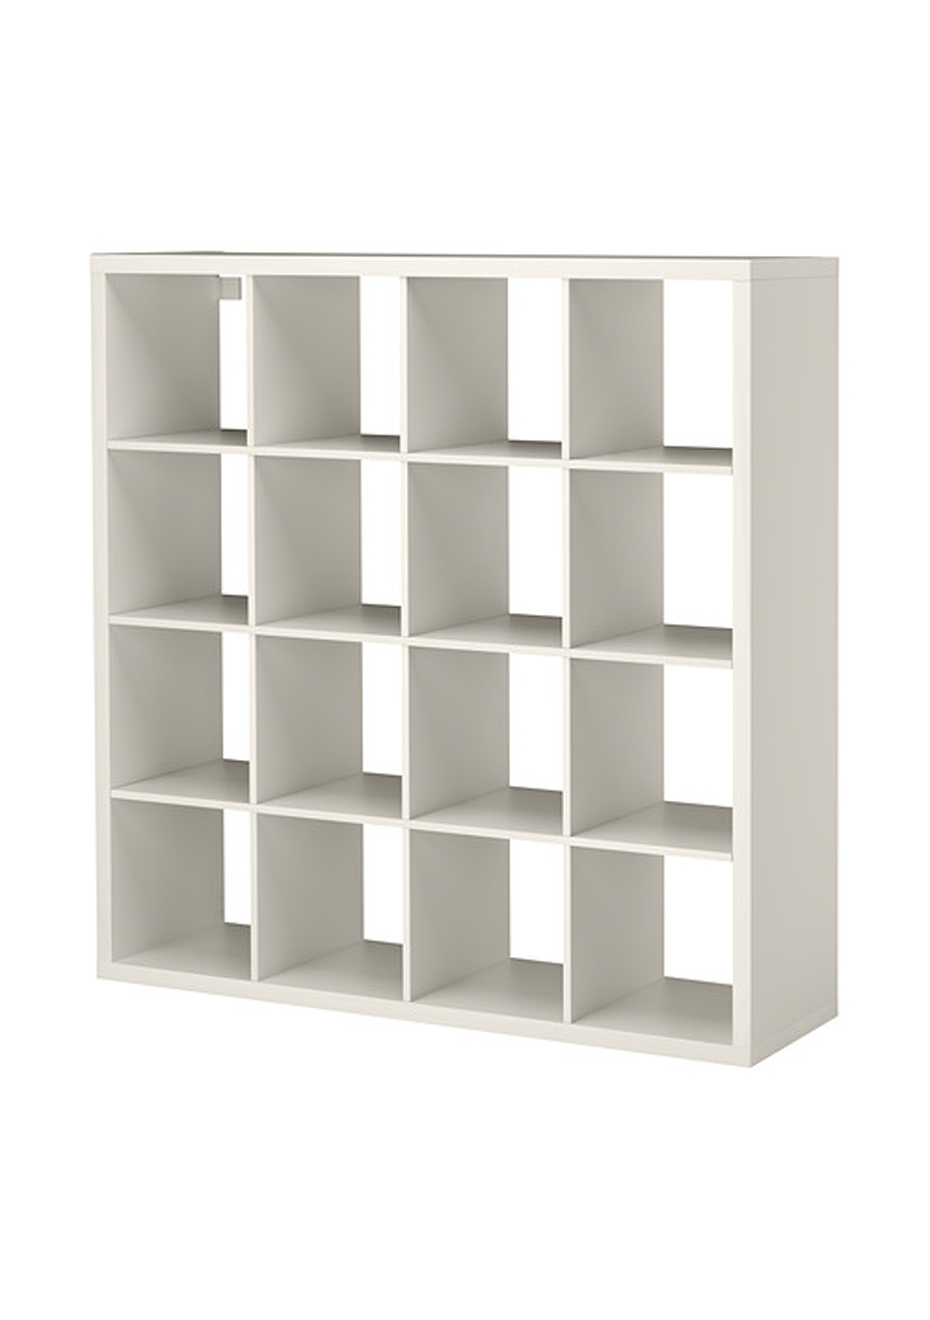 Ikea Expedit Ovet Ikea Kallax Shelving Unit 147x147cm White